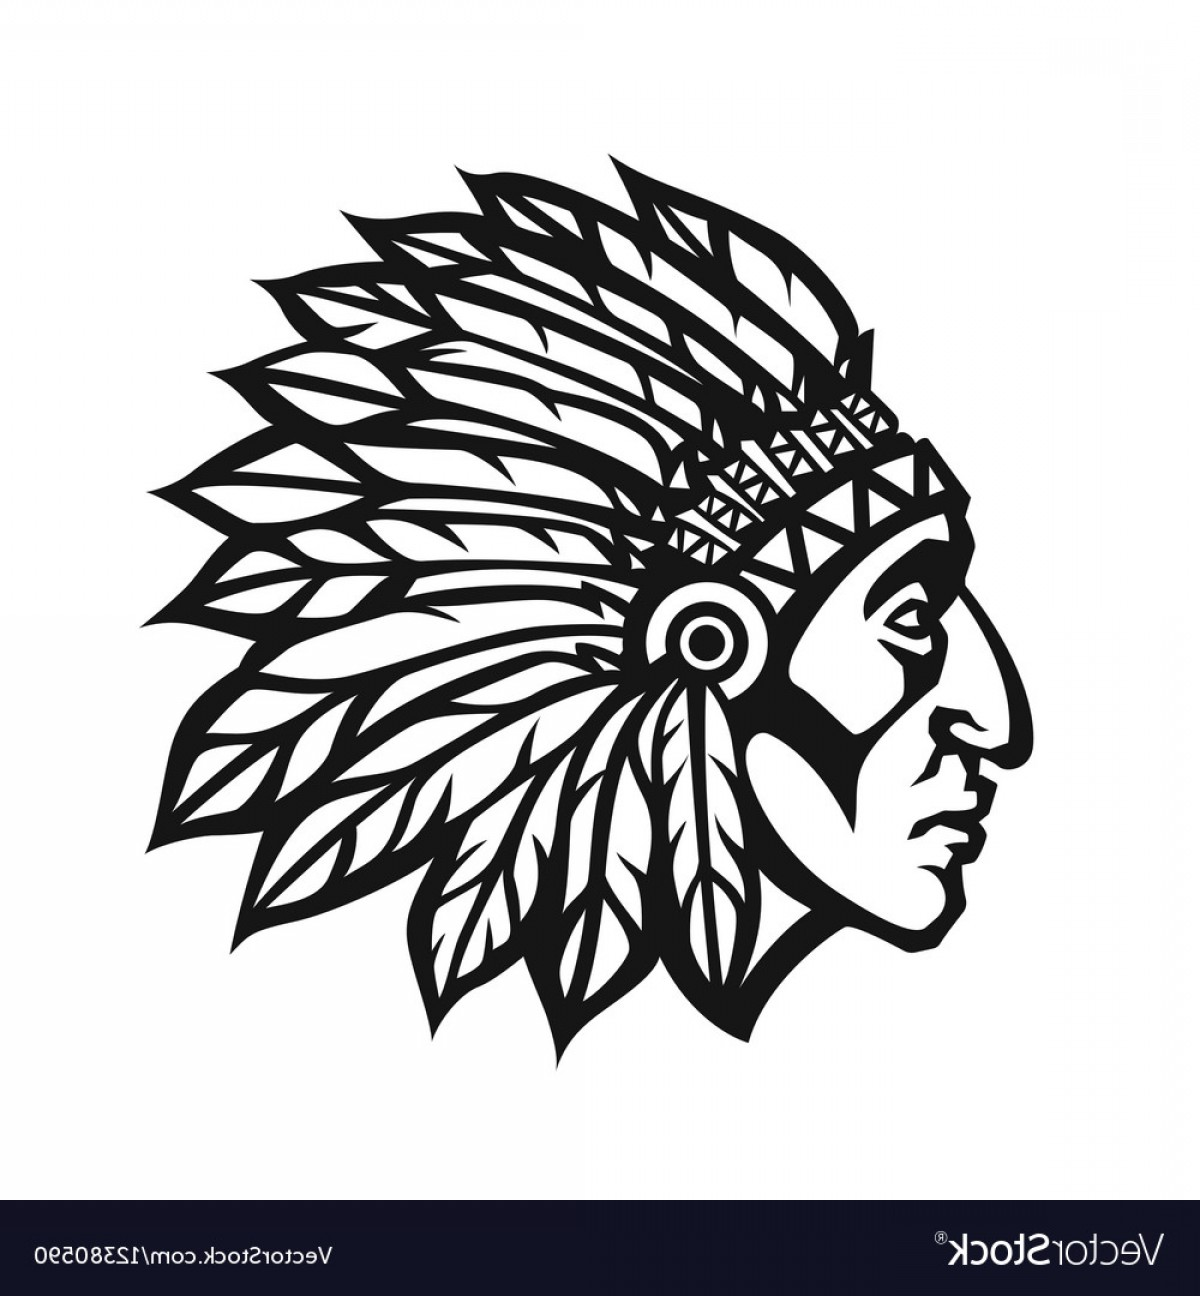 American Indian Chief Vector: Native American Indian Chief Head Profile Mascot Vector